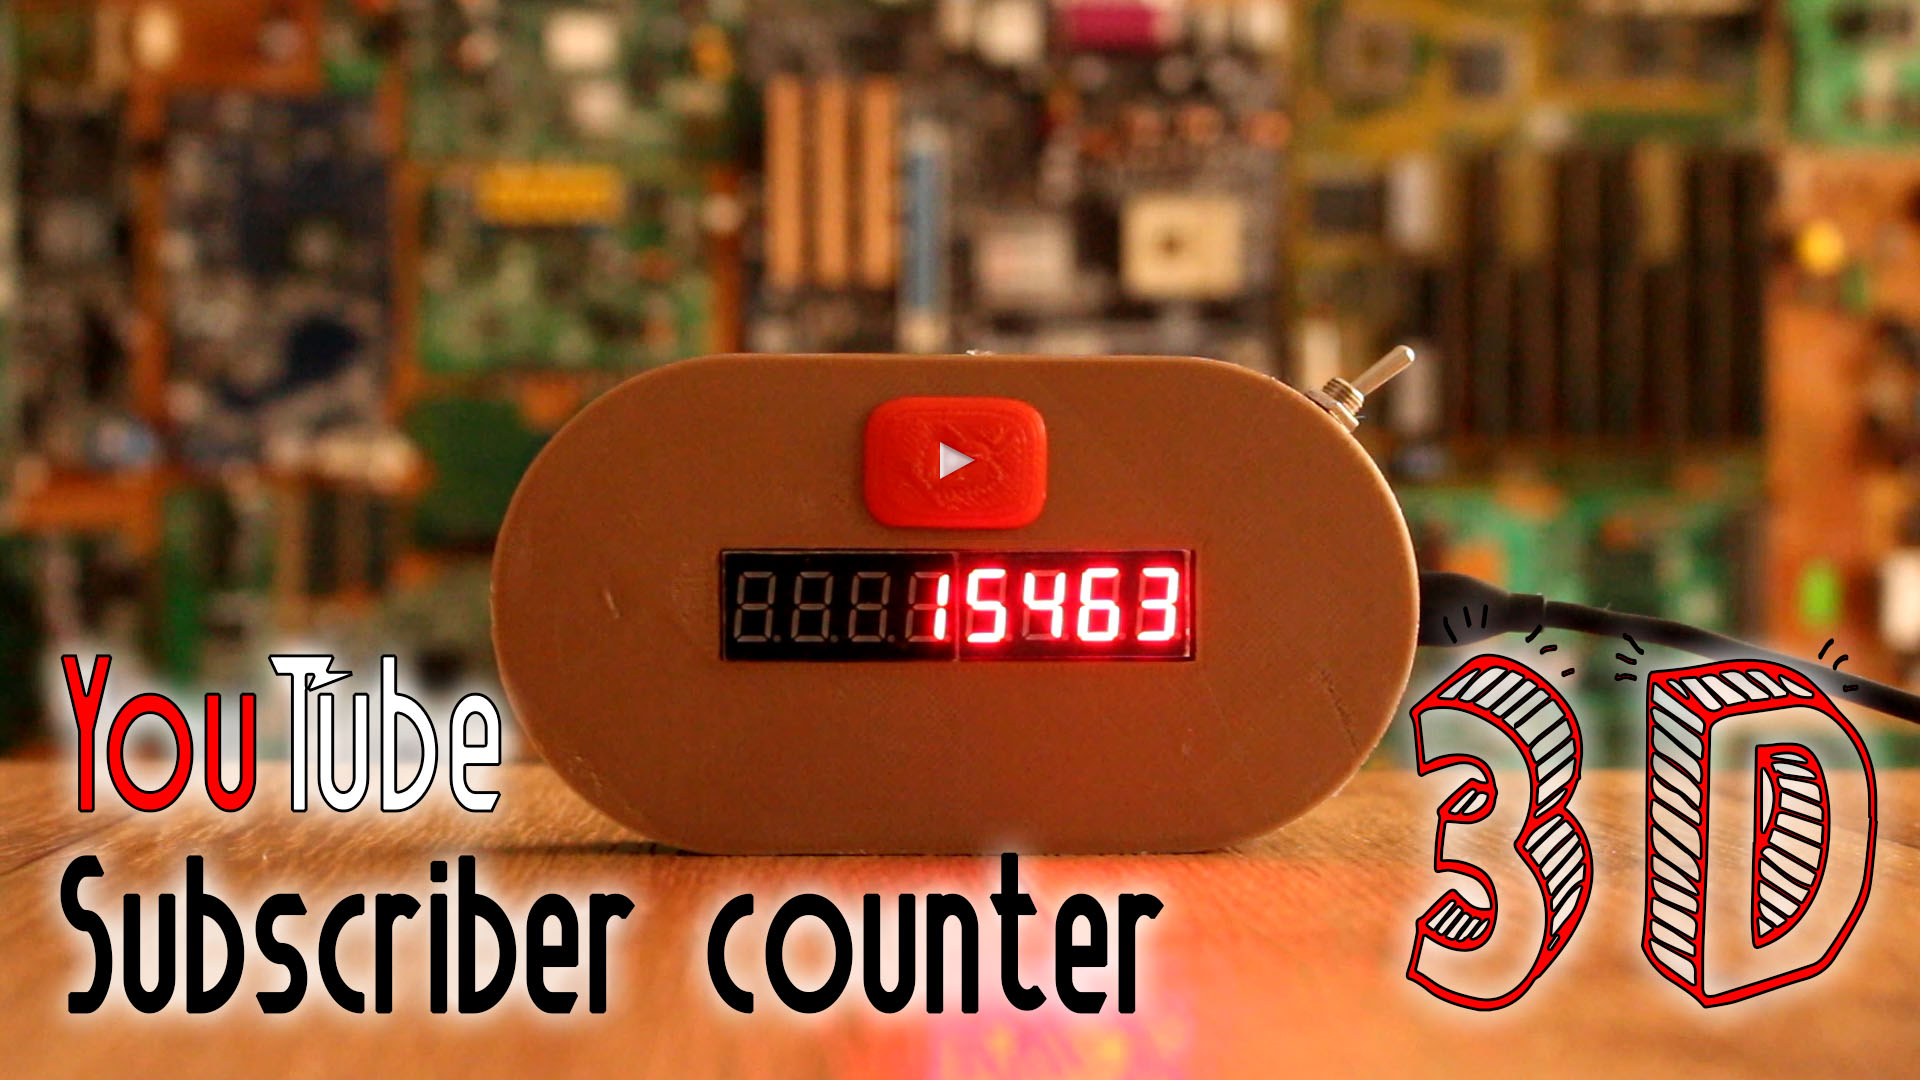 YouTube subscriber counter WIFI by ELECTRONOOBS - Thingiverse